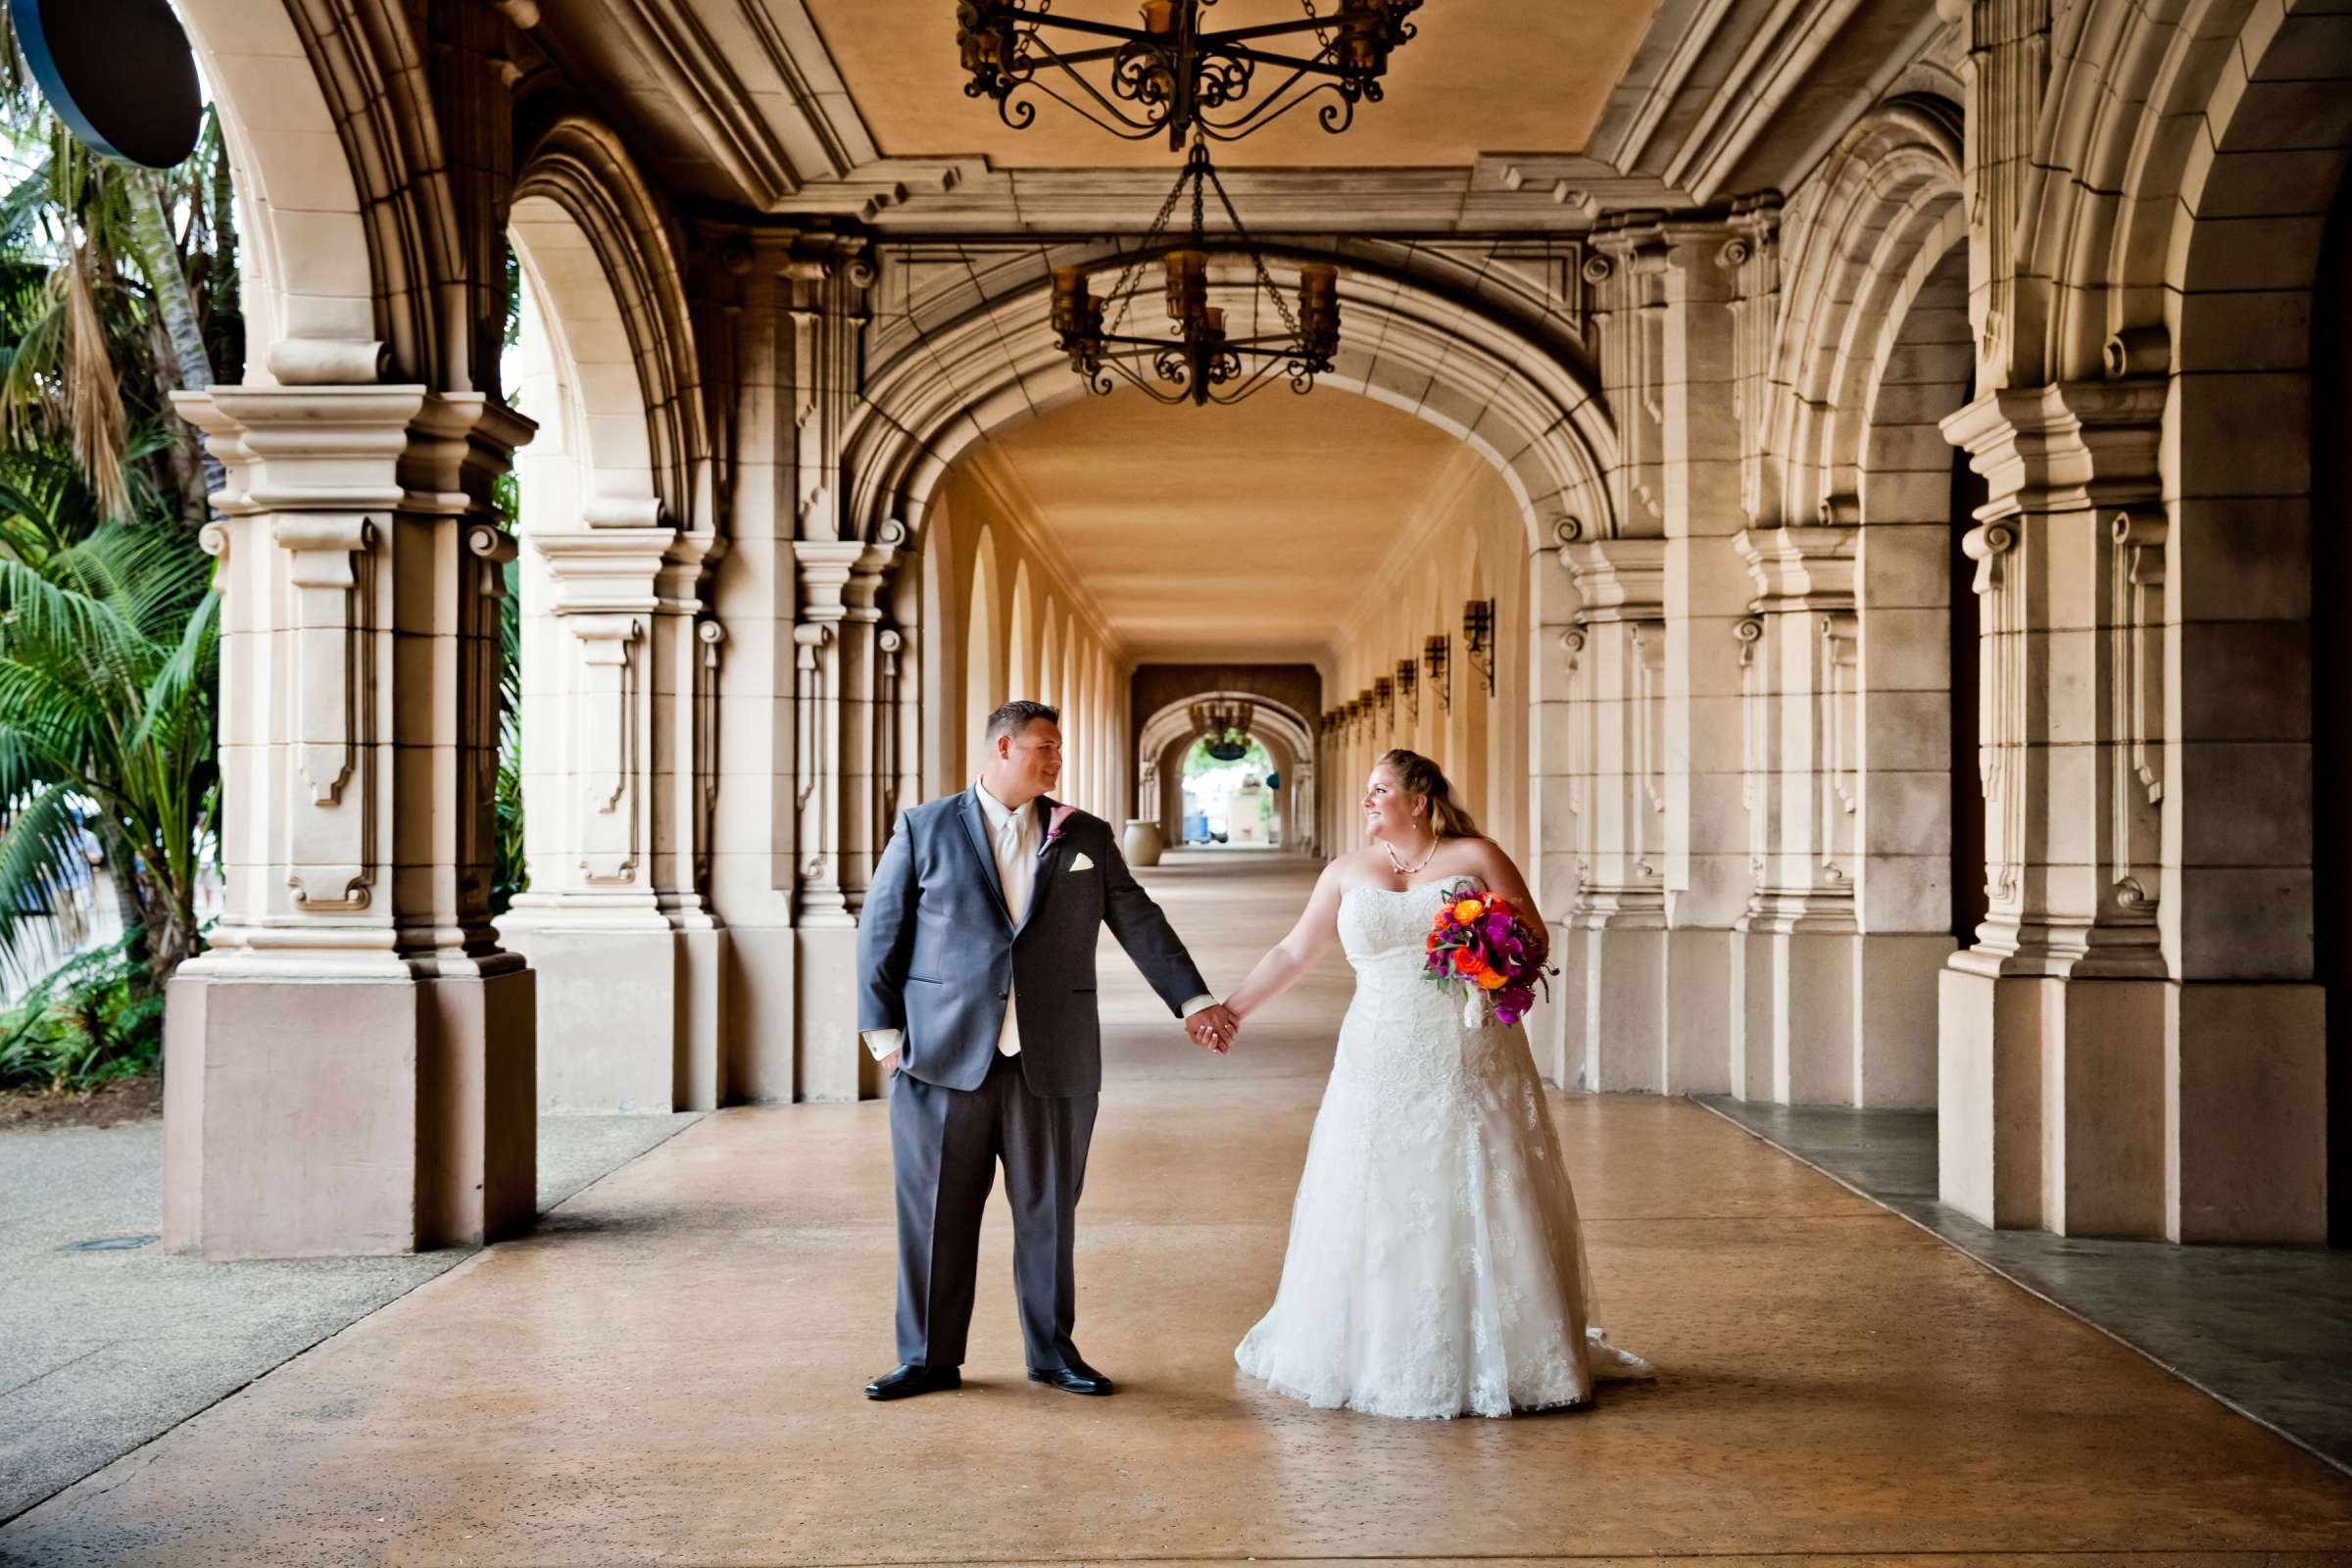 The Prado Wedding coordinated by Monarch Weddings, Eileen and Robbie Wedding Photo #2 by True Photography